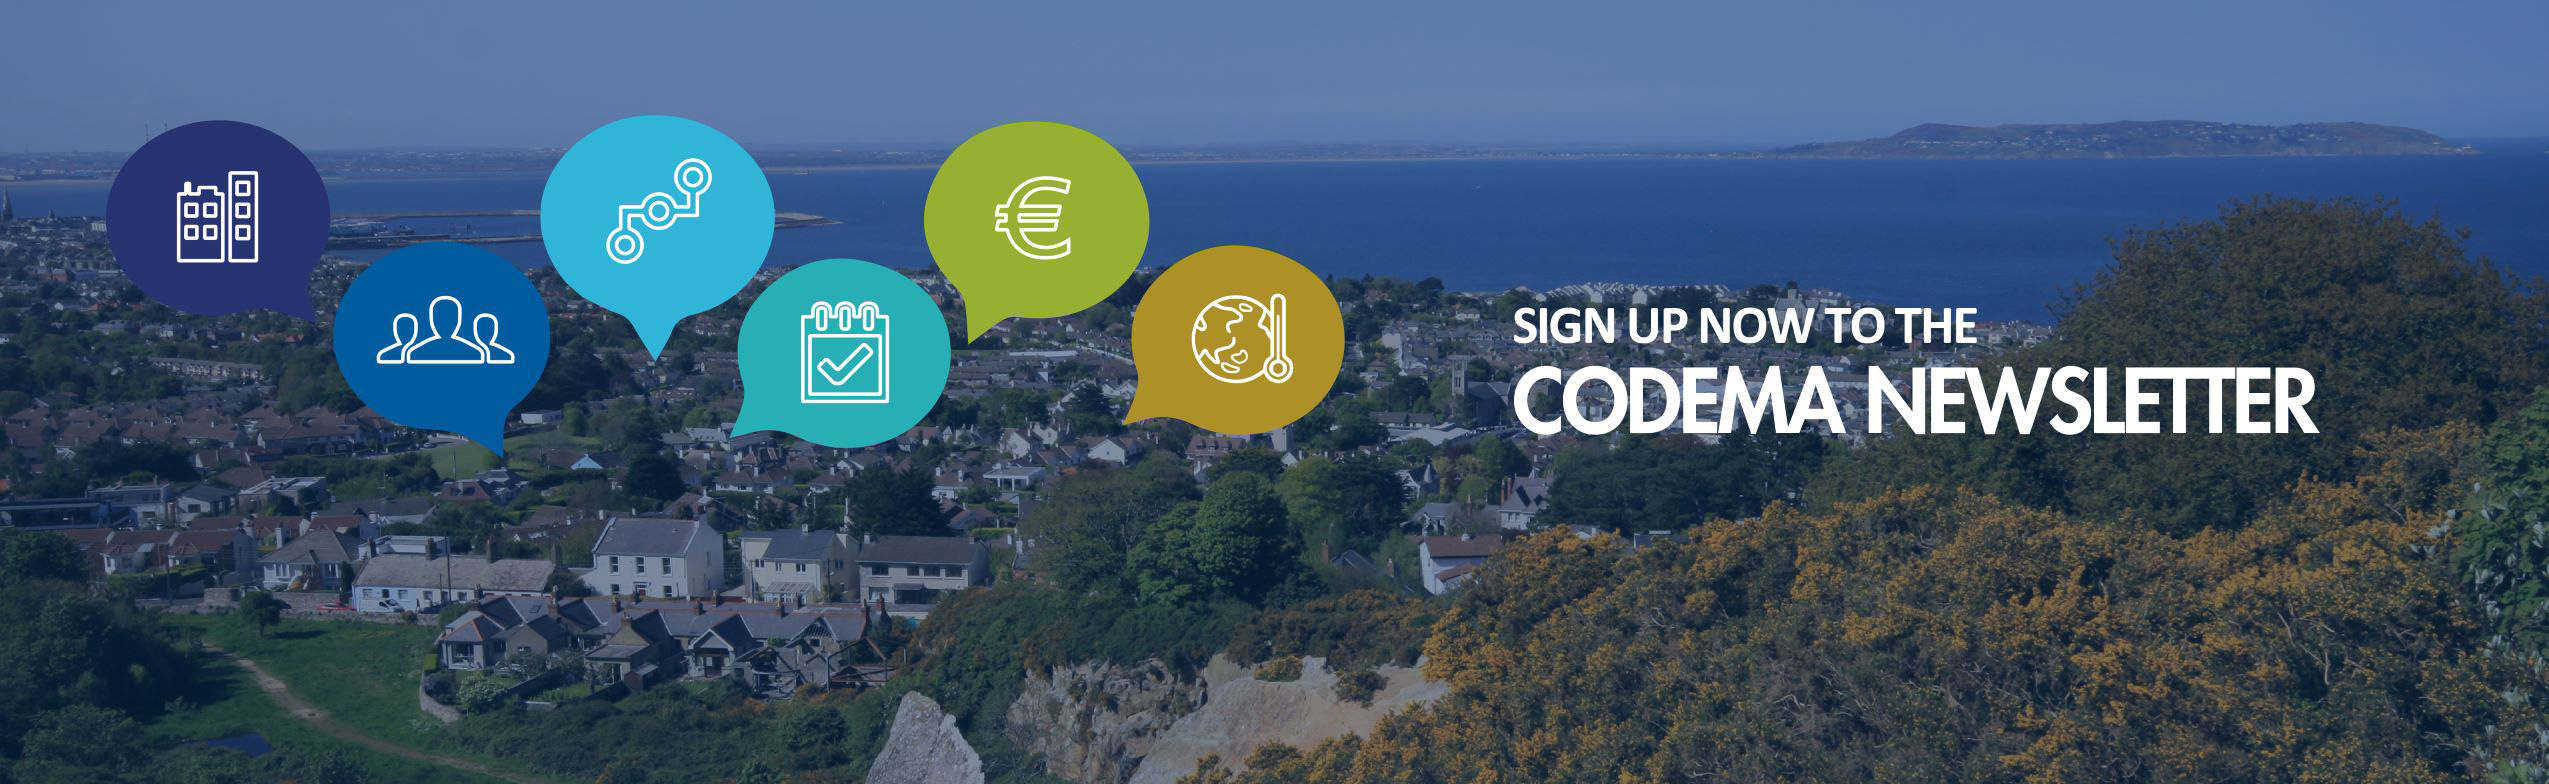 Codema Newsletter